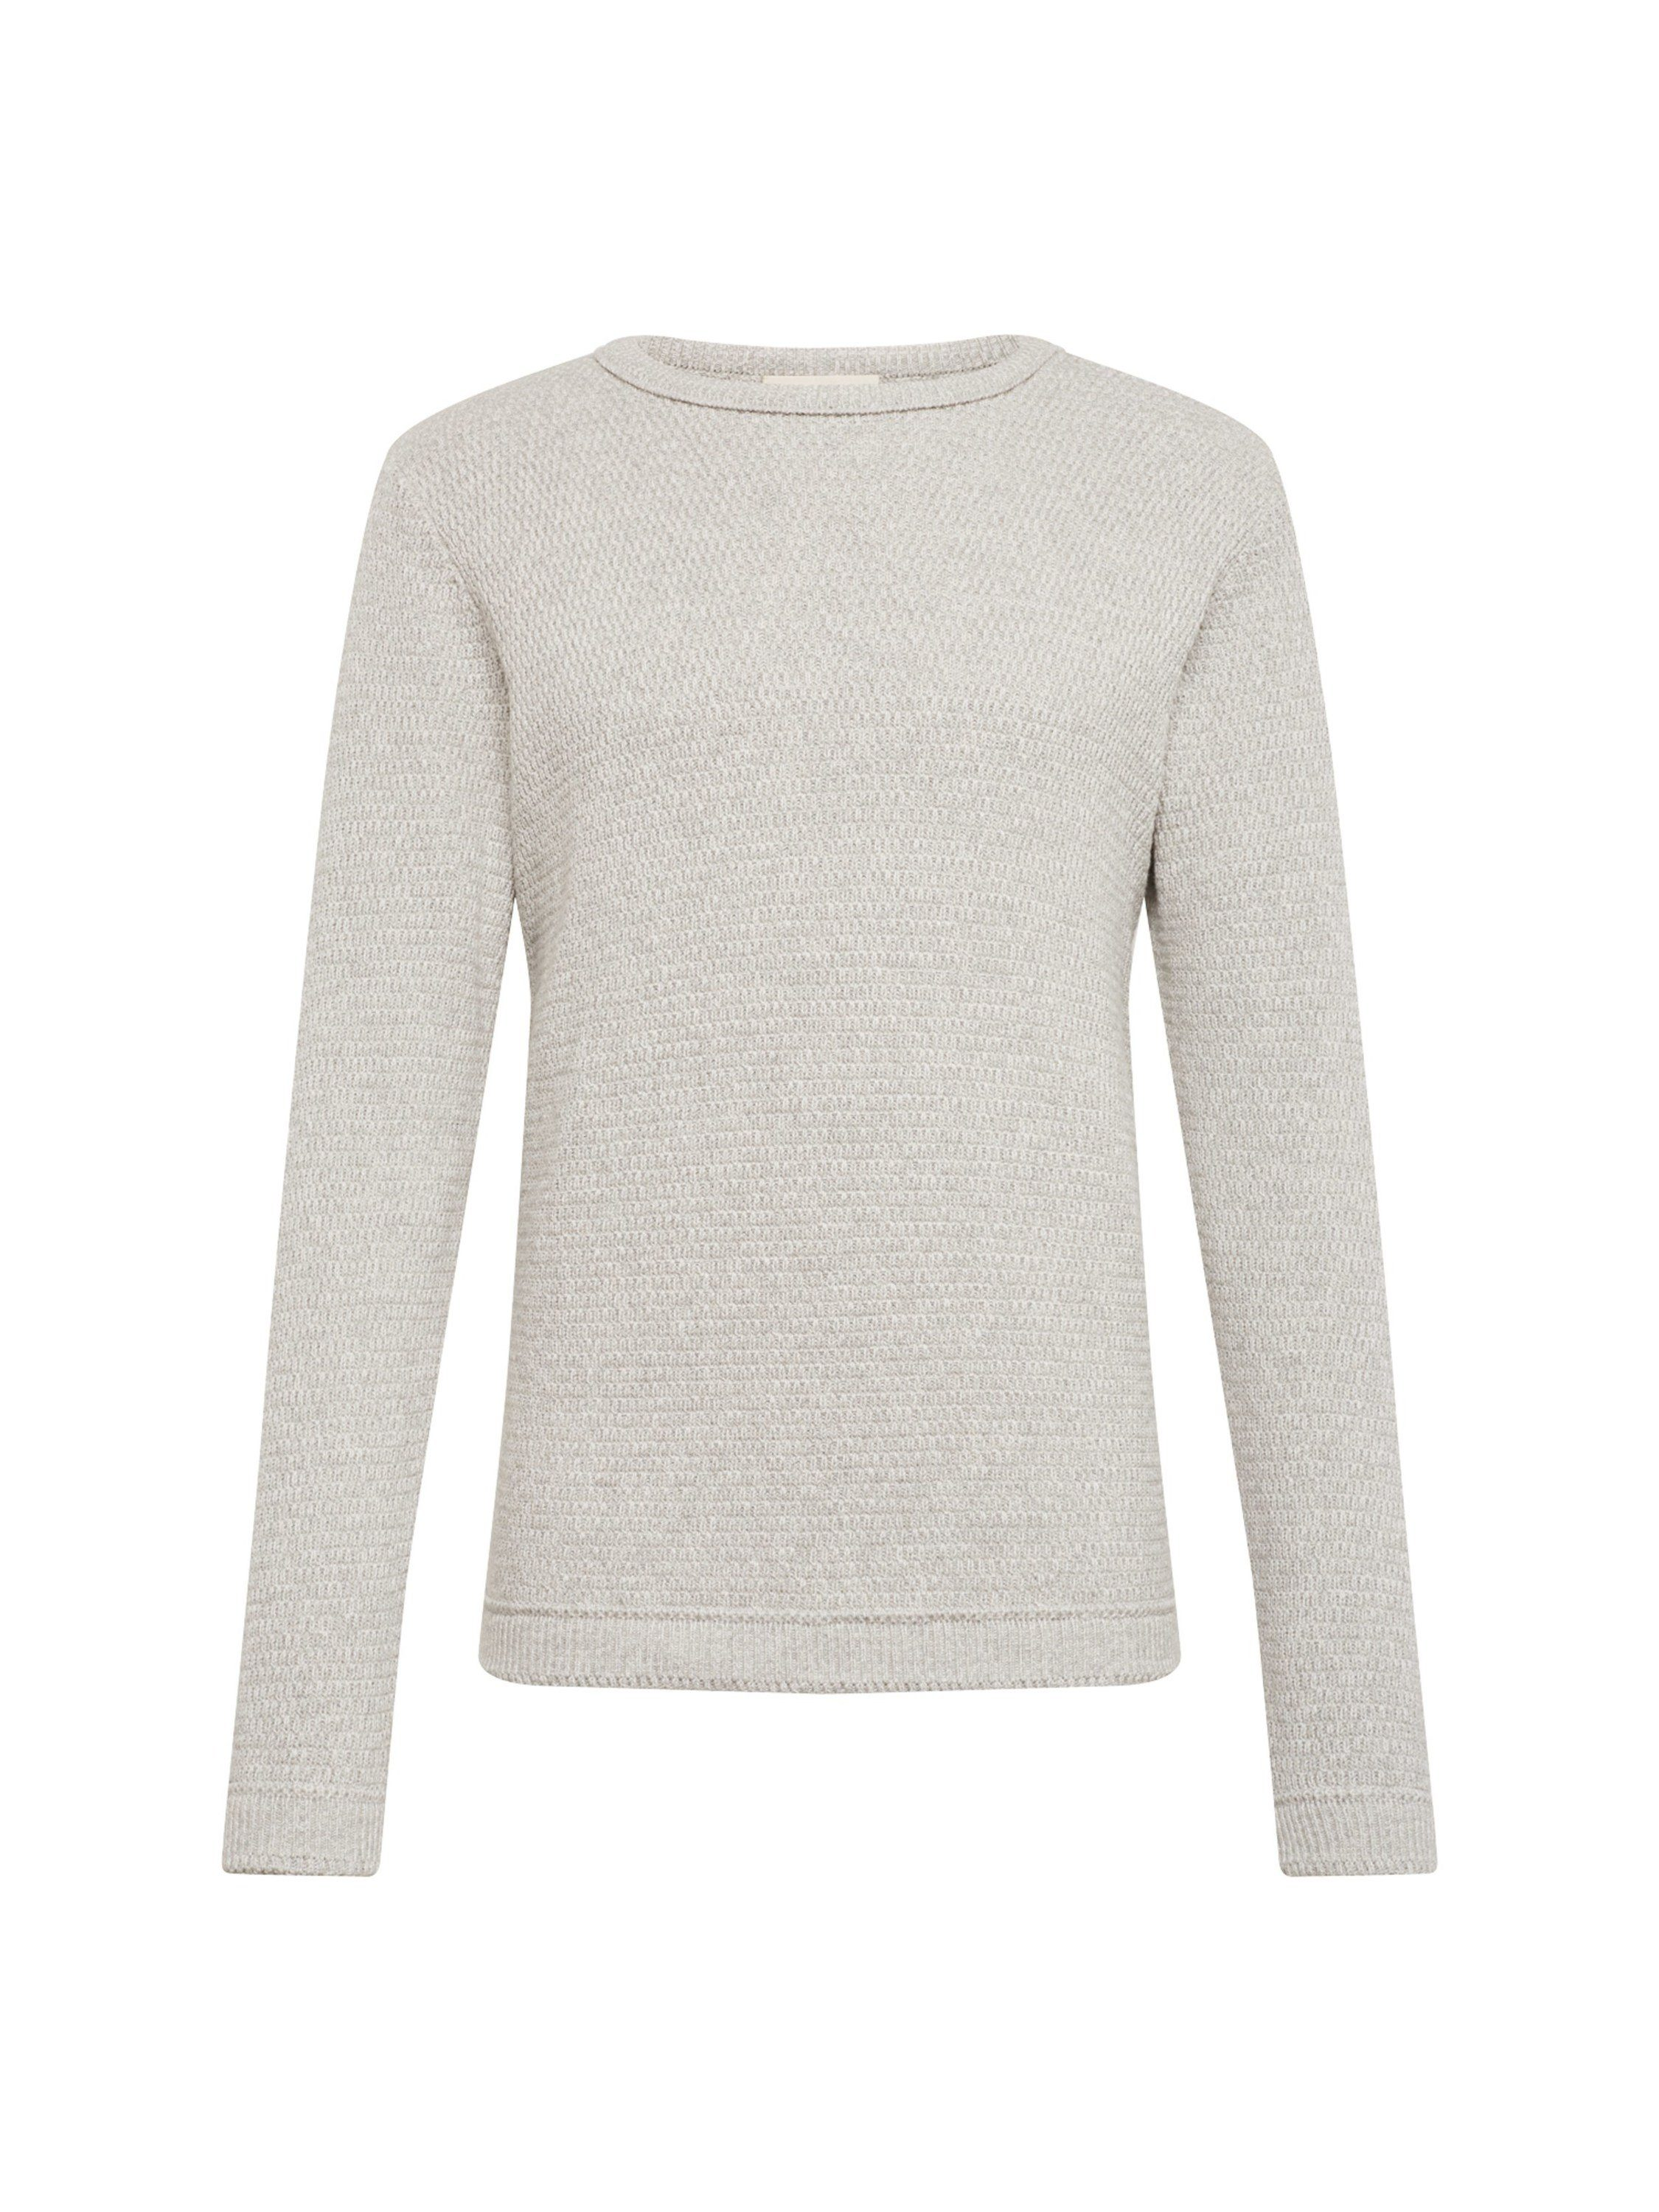 SELECTED HOMME Strickpullover »VICTOR CREW NECK W NOOS«